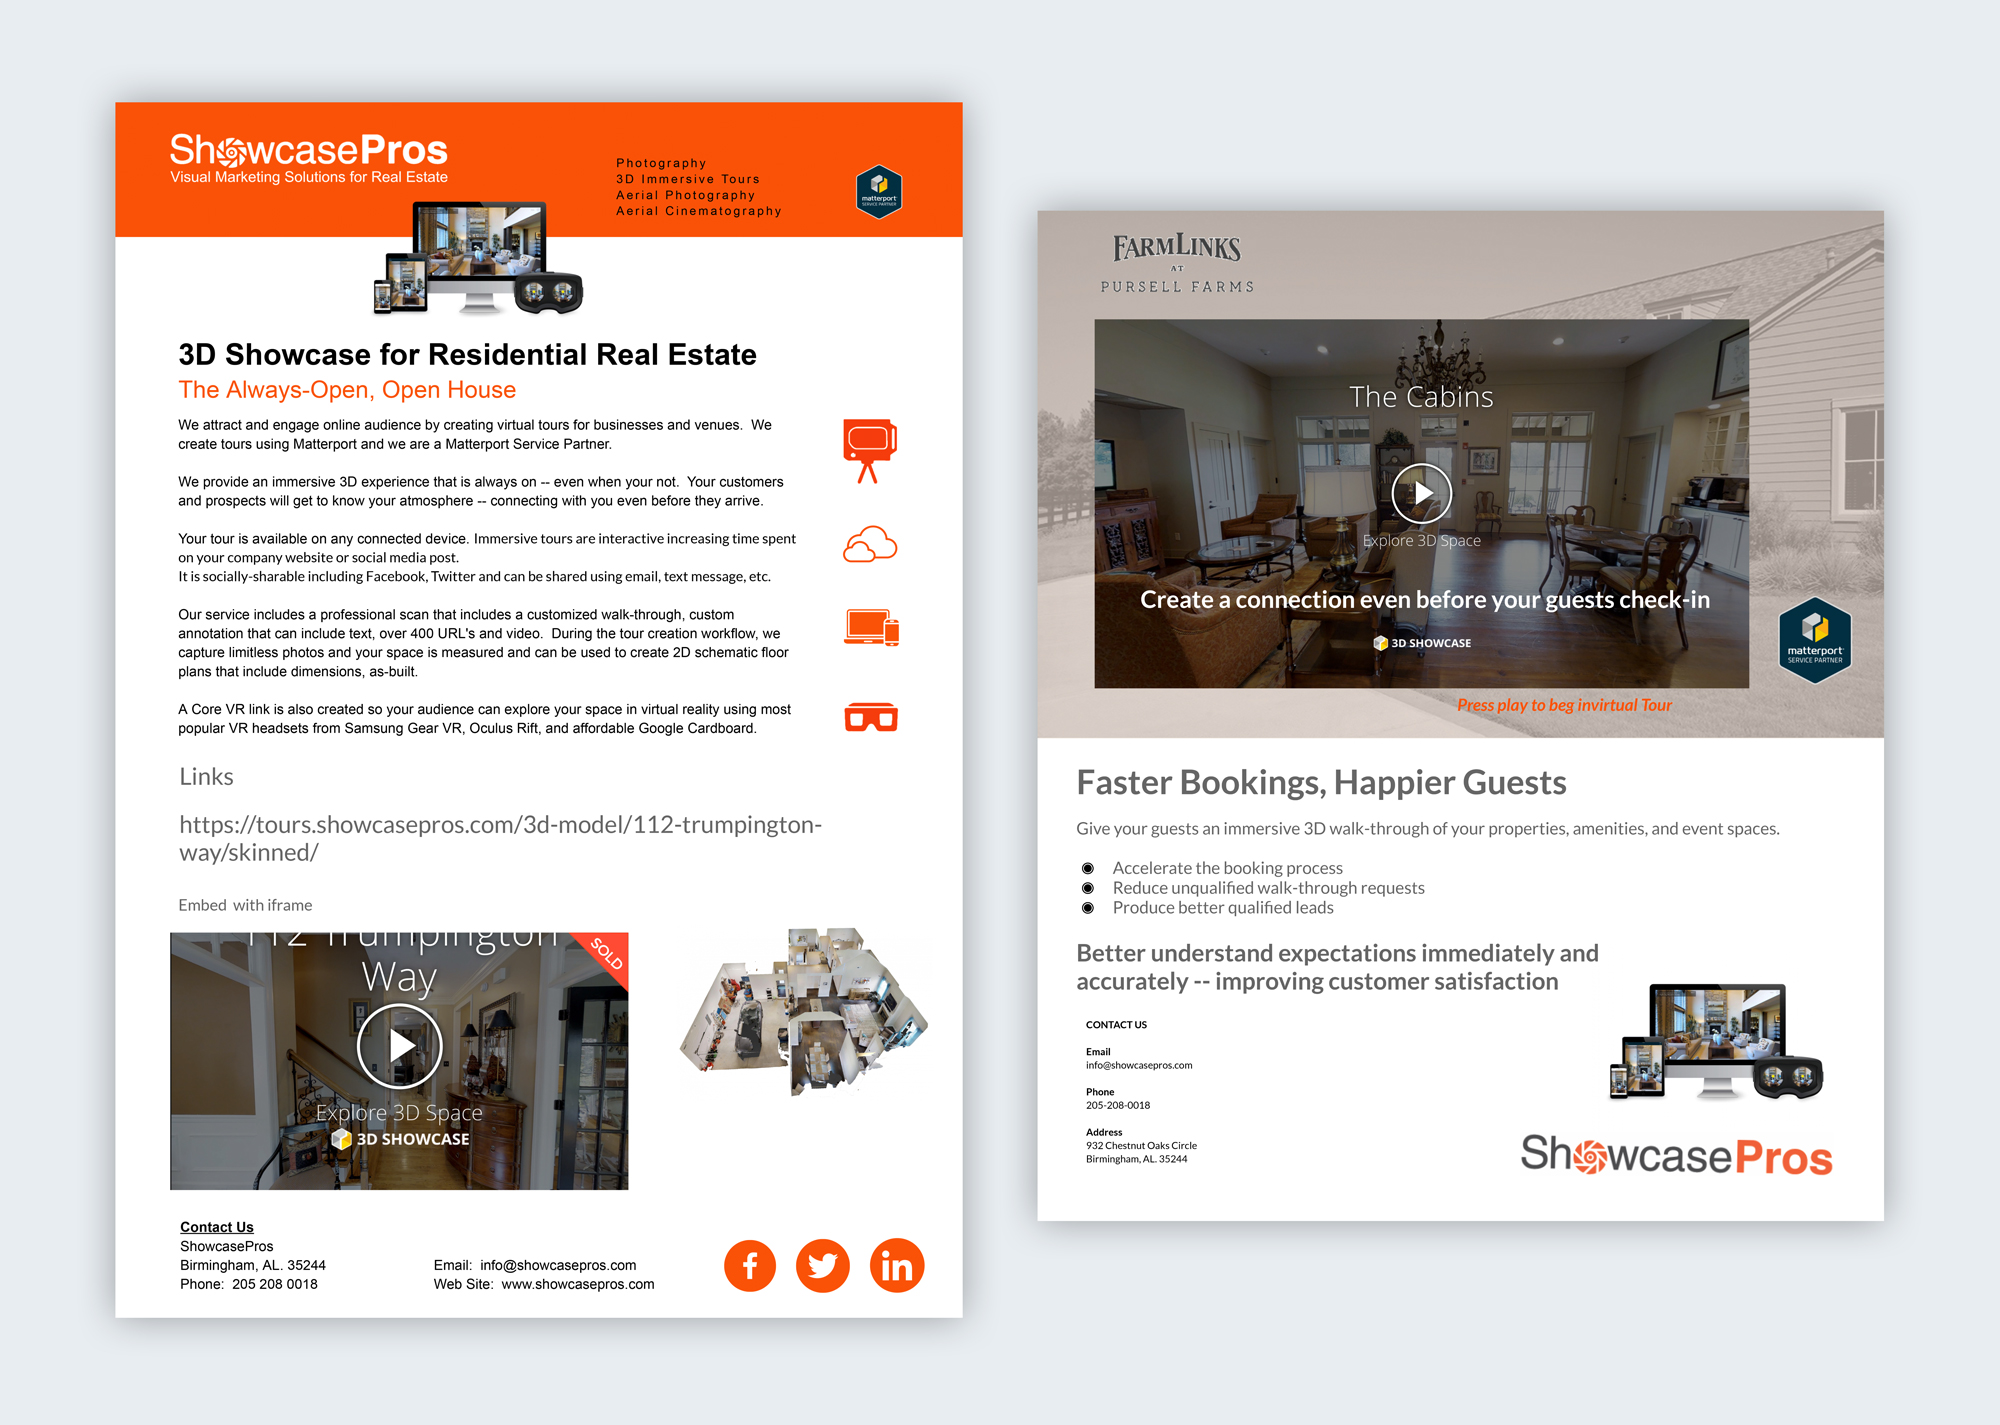 How-a-Real-Estate-Marketing-Company-Is-Using-Visme-to-Create-Interactive-Content showcase pros